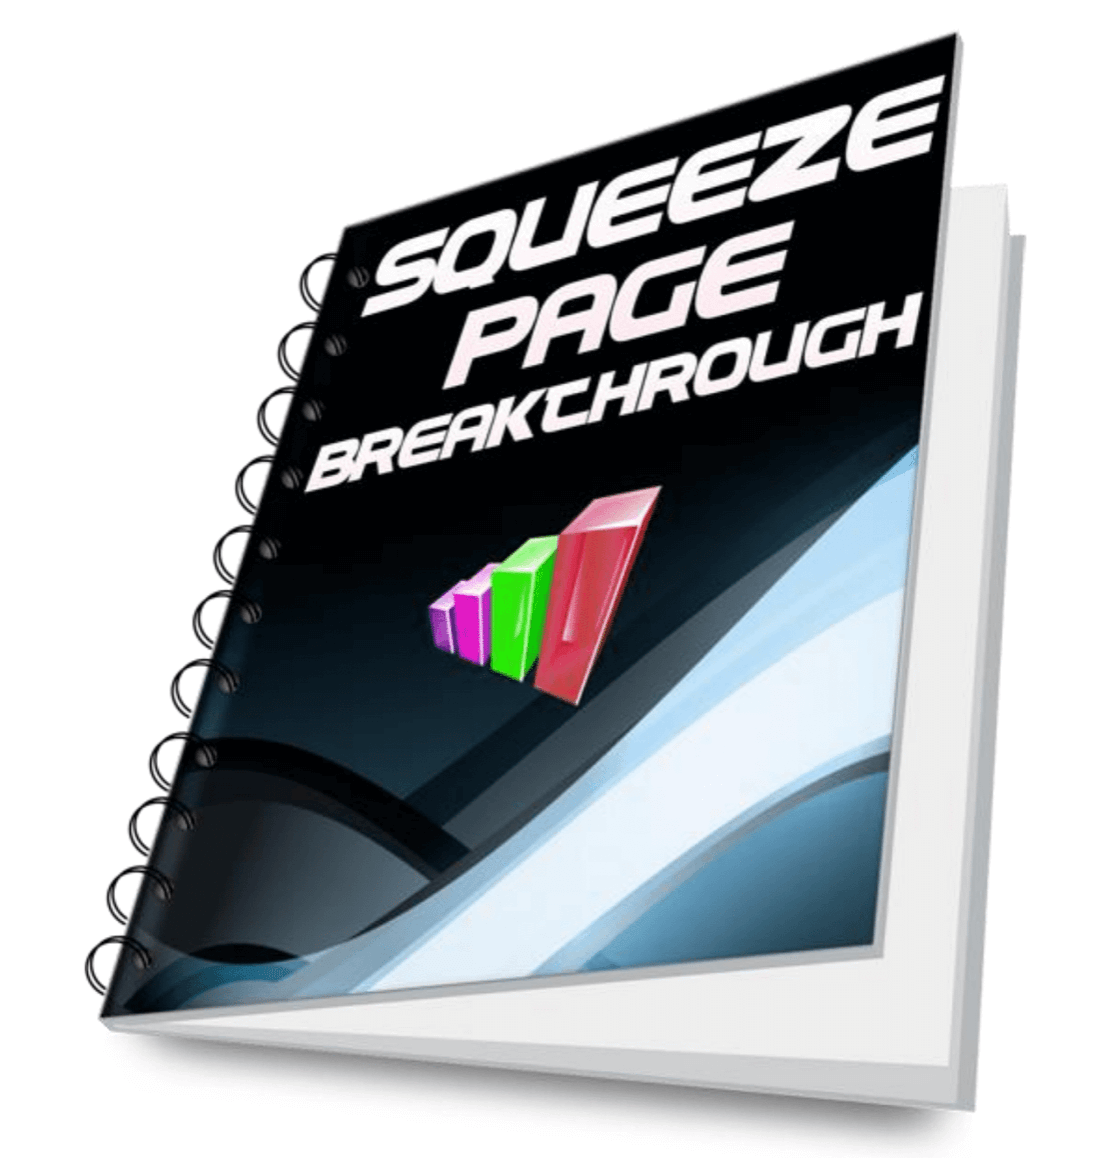 34. Squeeze-Page-Breakthrough